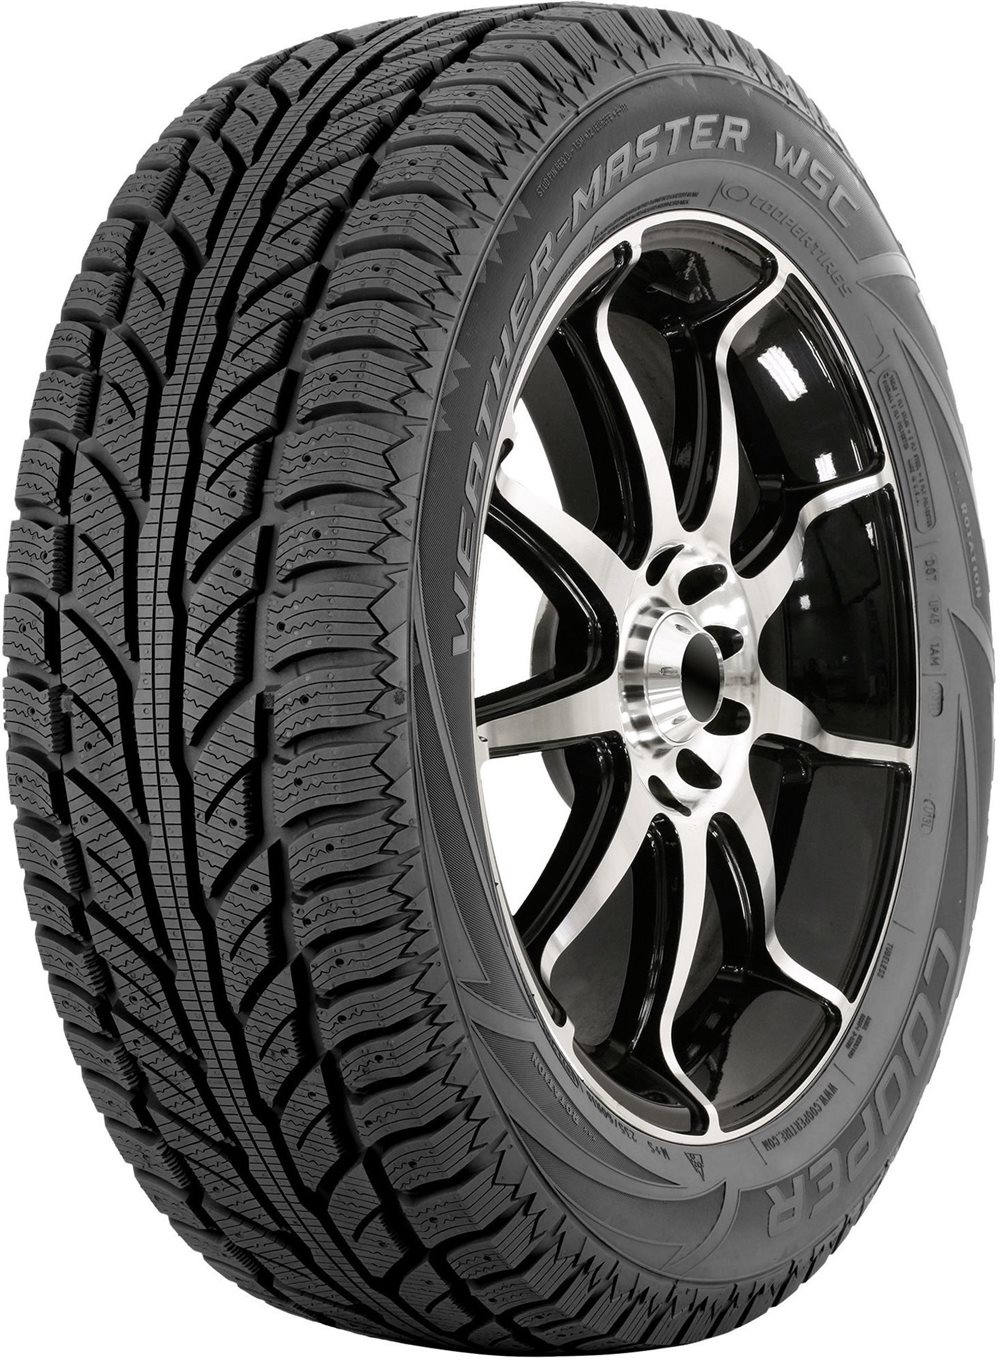 COOPER WEATHER MASTER WSC 245/60 R 18